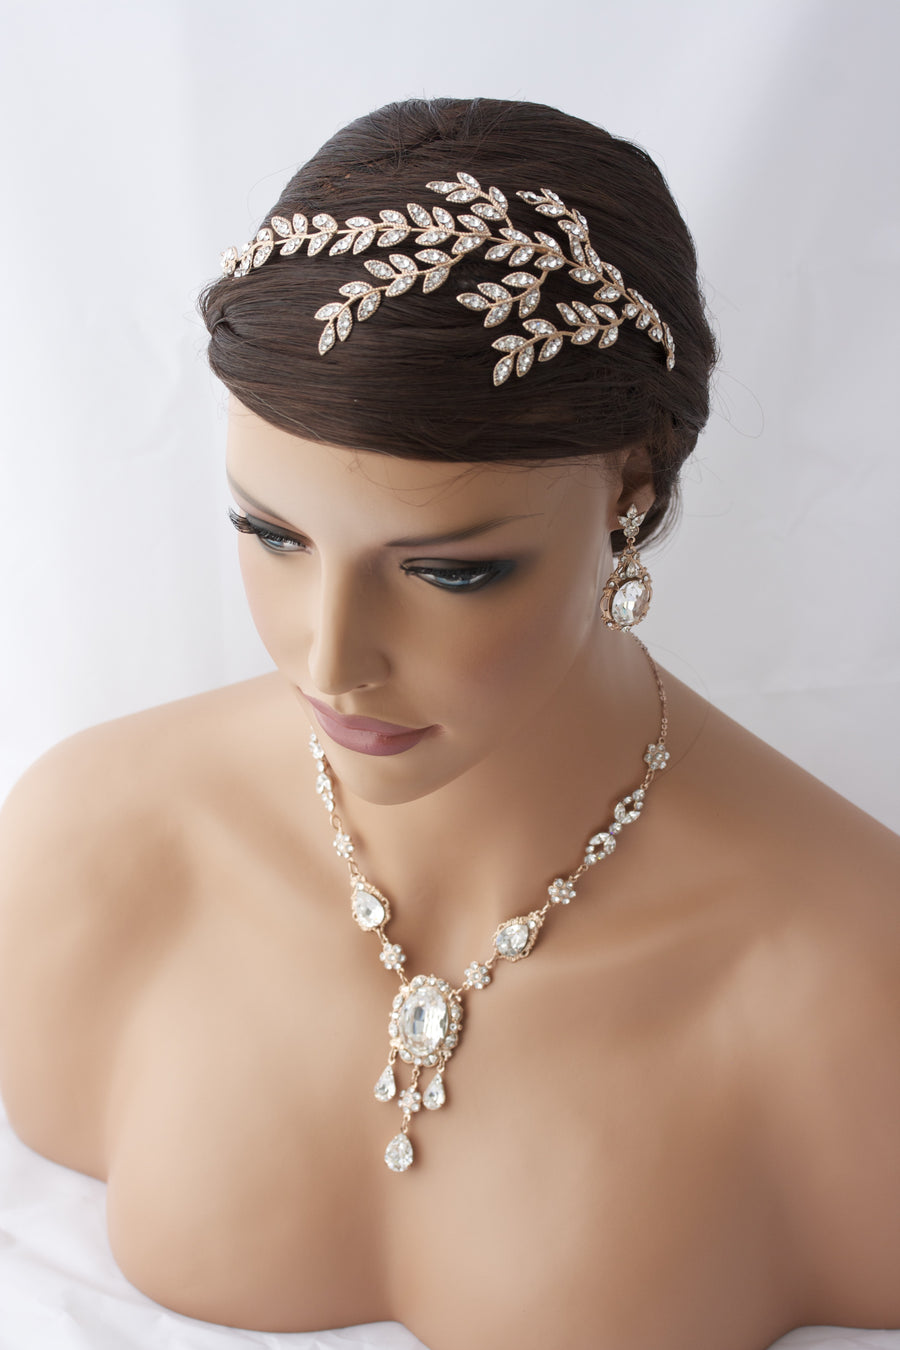 NEVE LEAF HEADBAND - Lulu Splendor